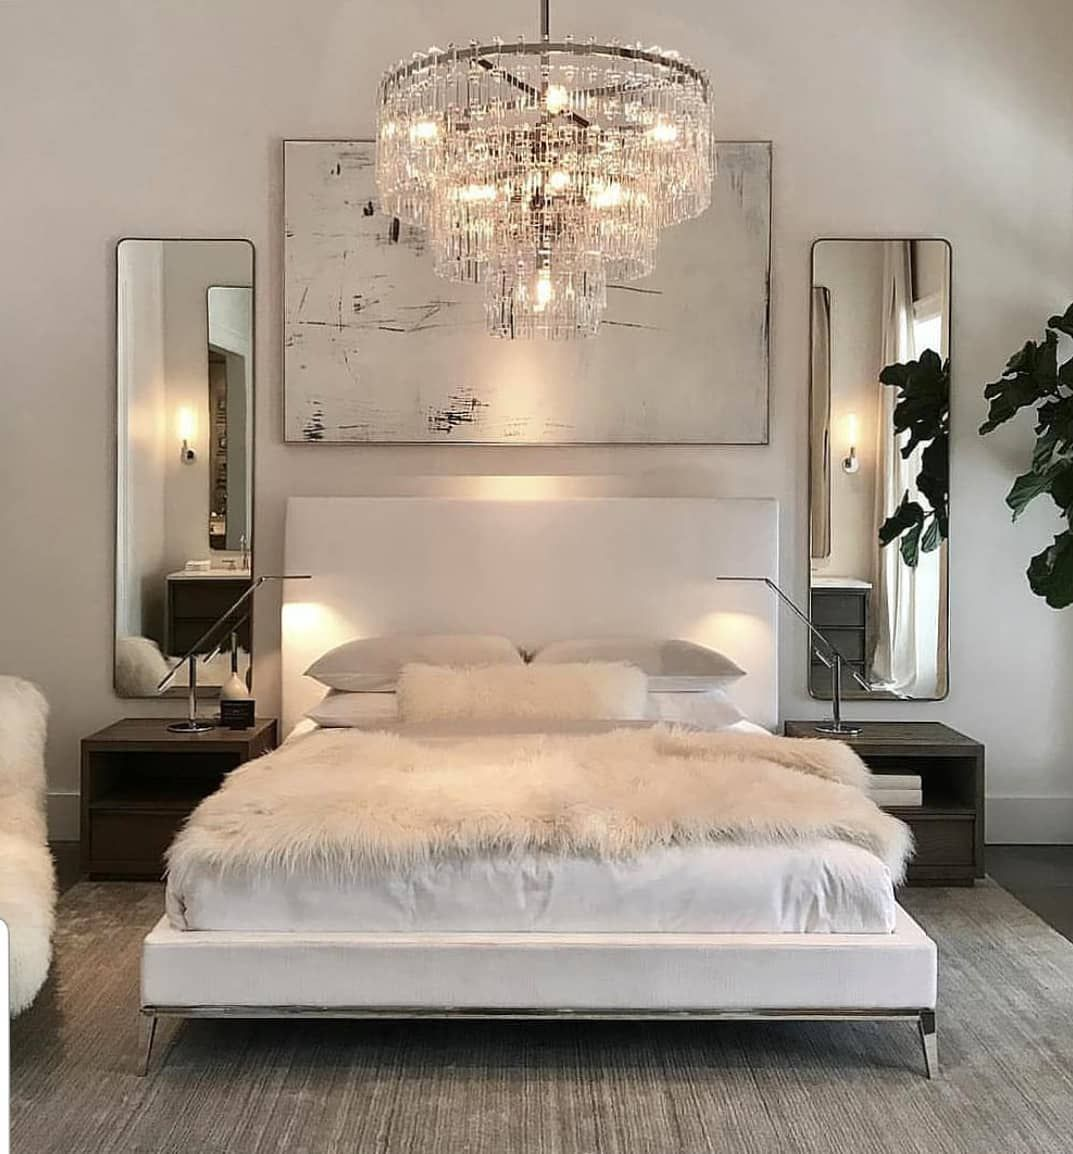 "Home Decor/Interior Design on Instagram: ""Which RH bedroom would"